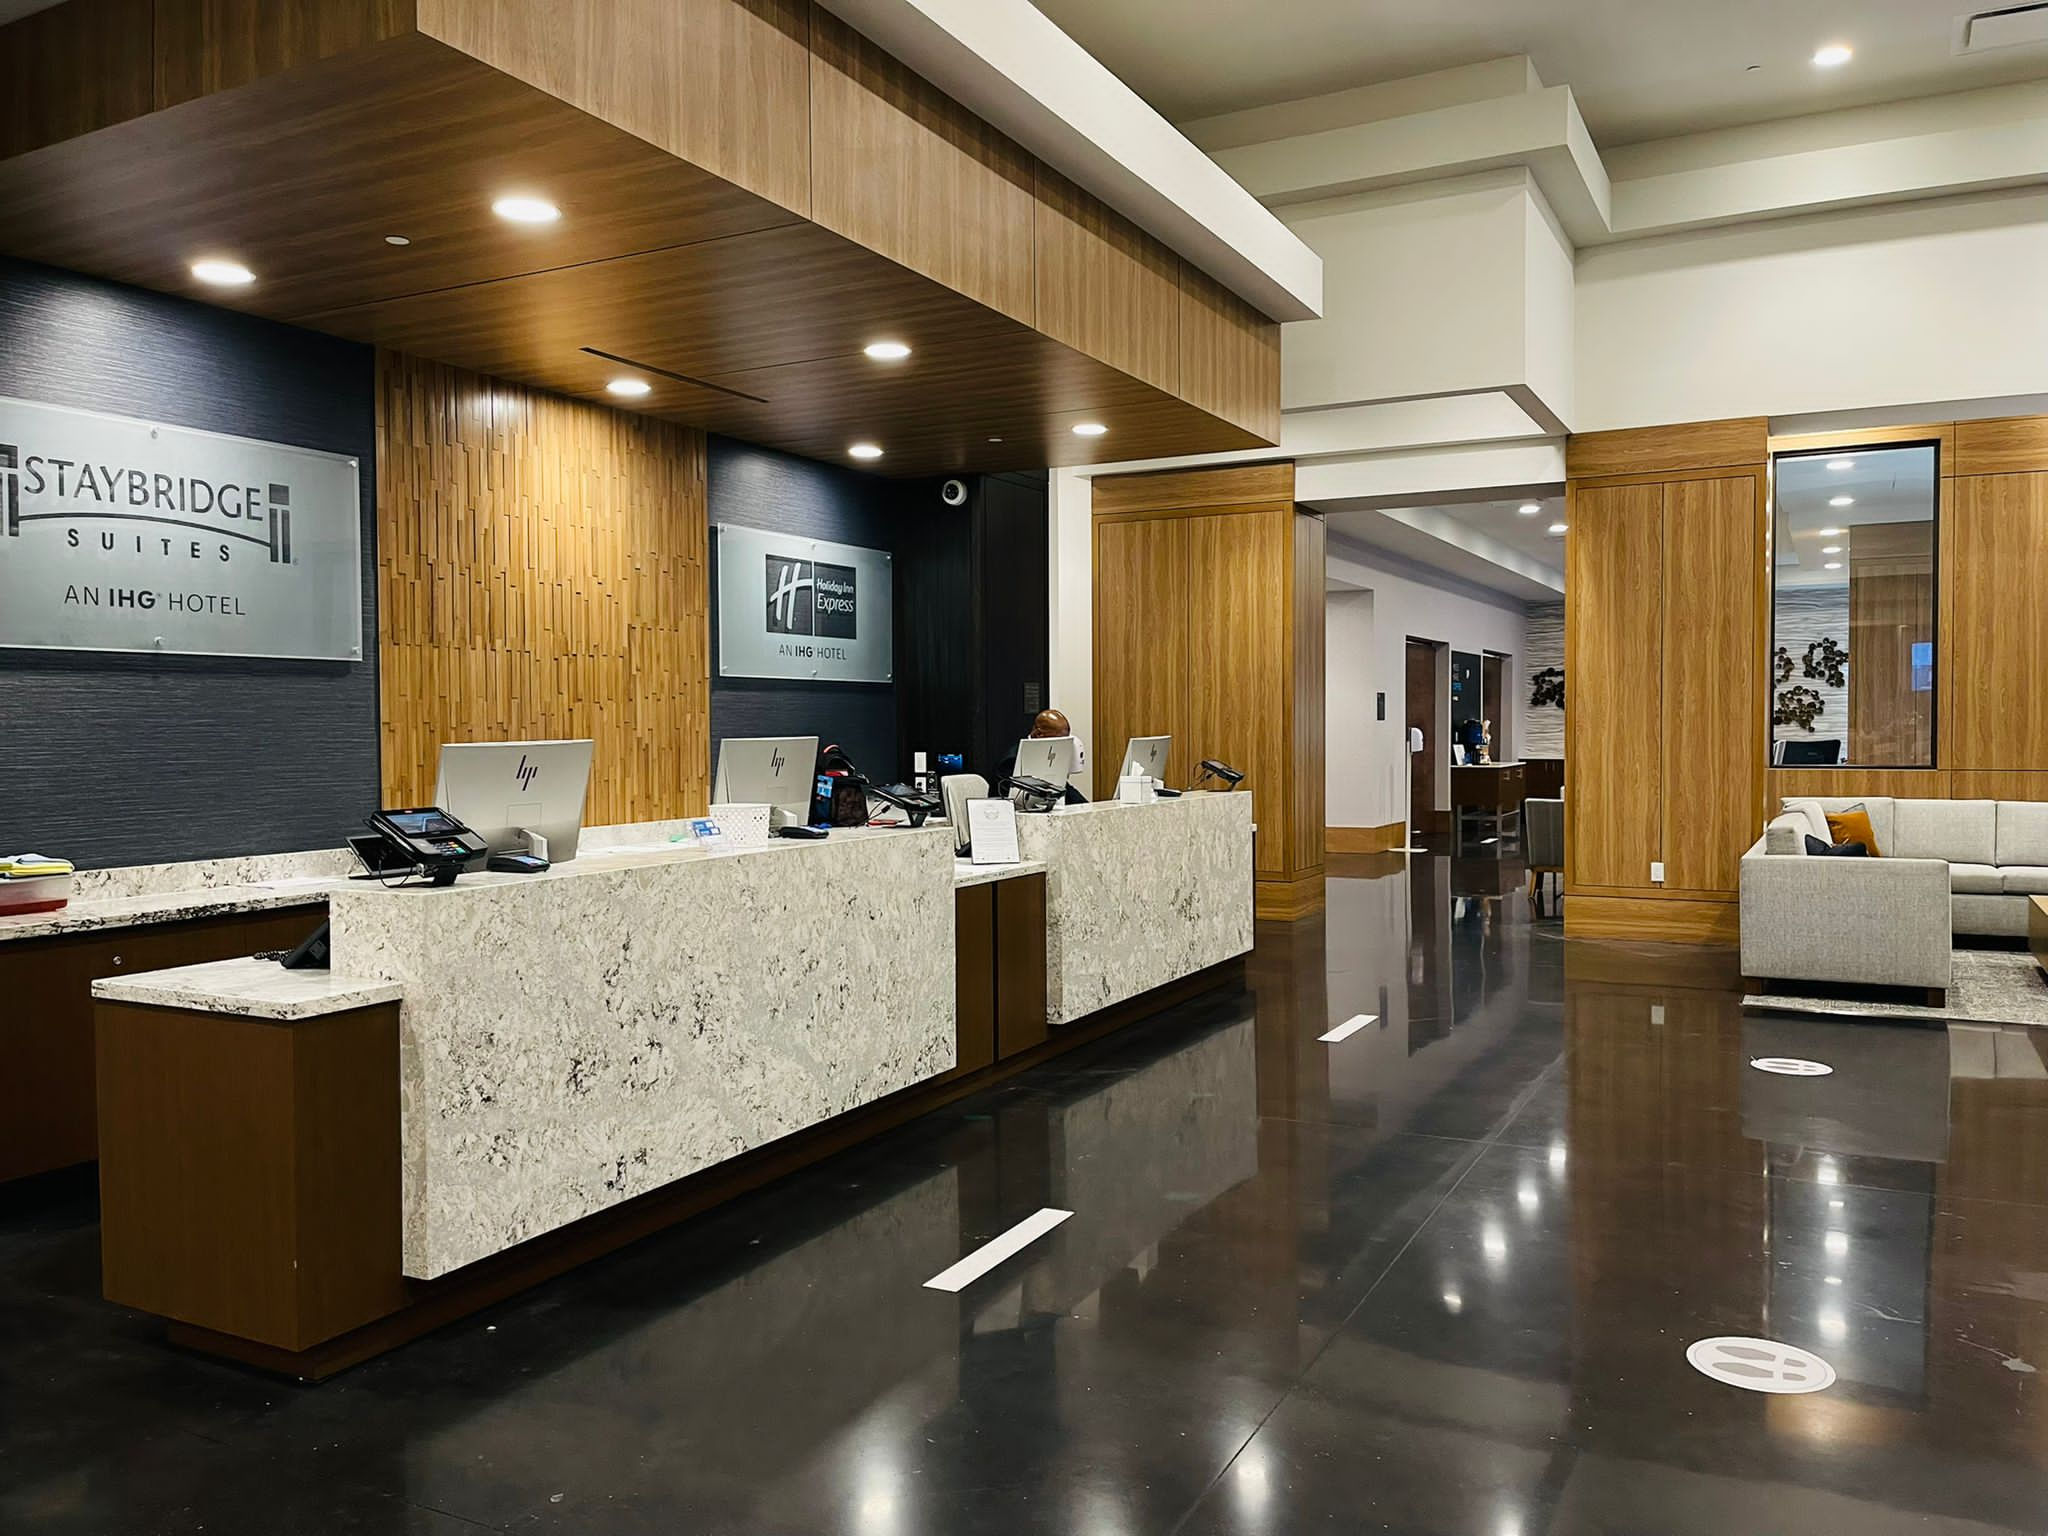 Holiday Inn Express Houston The Brand New Hotel in Galleria